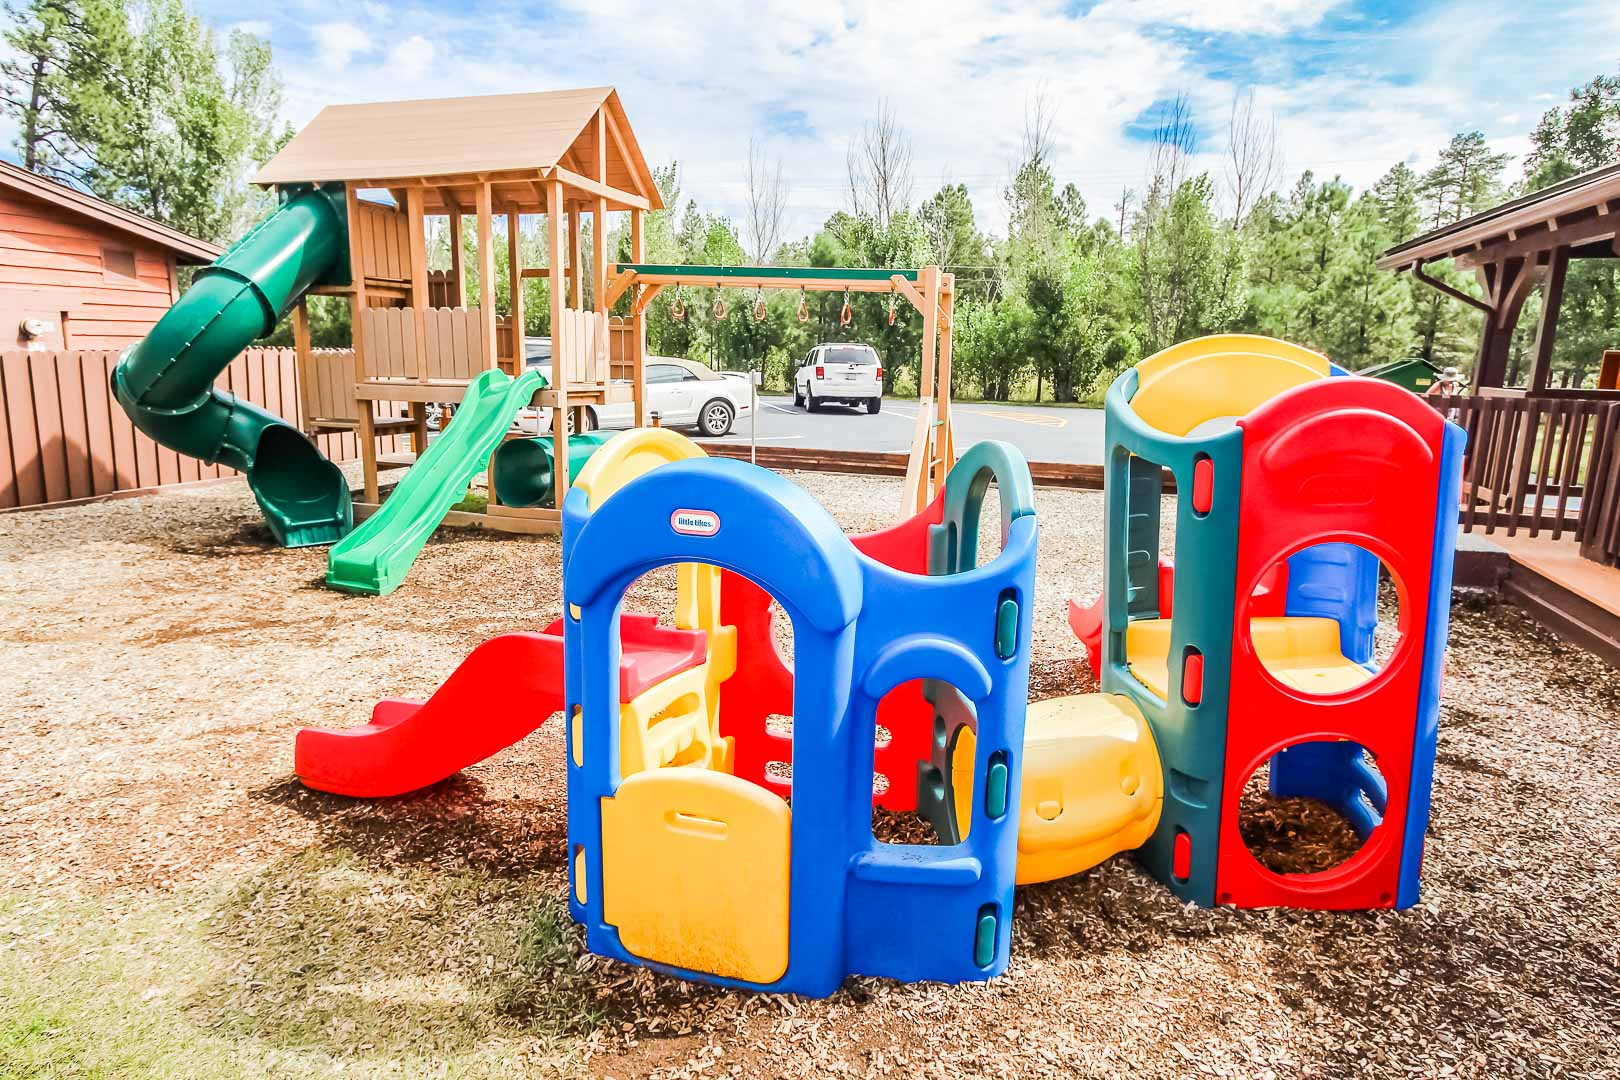 A colorful children play set at VRI's Roundhouse Resort in Pinetop, Arizona.